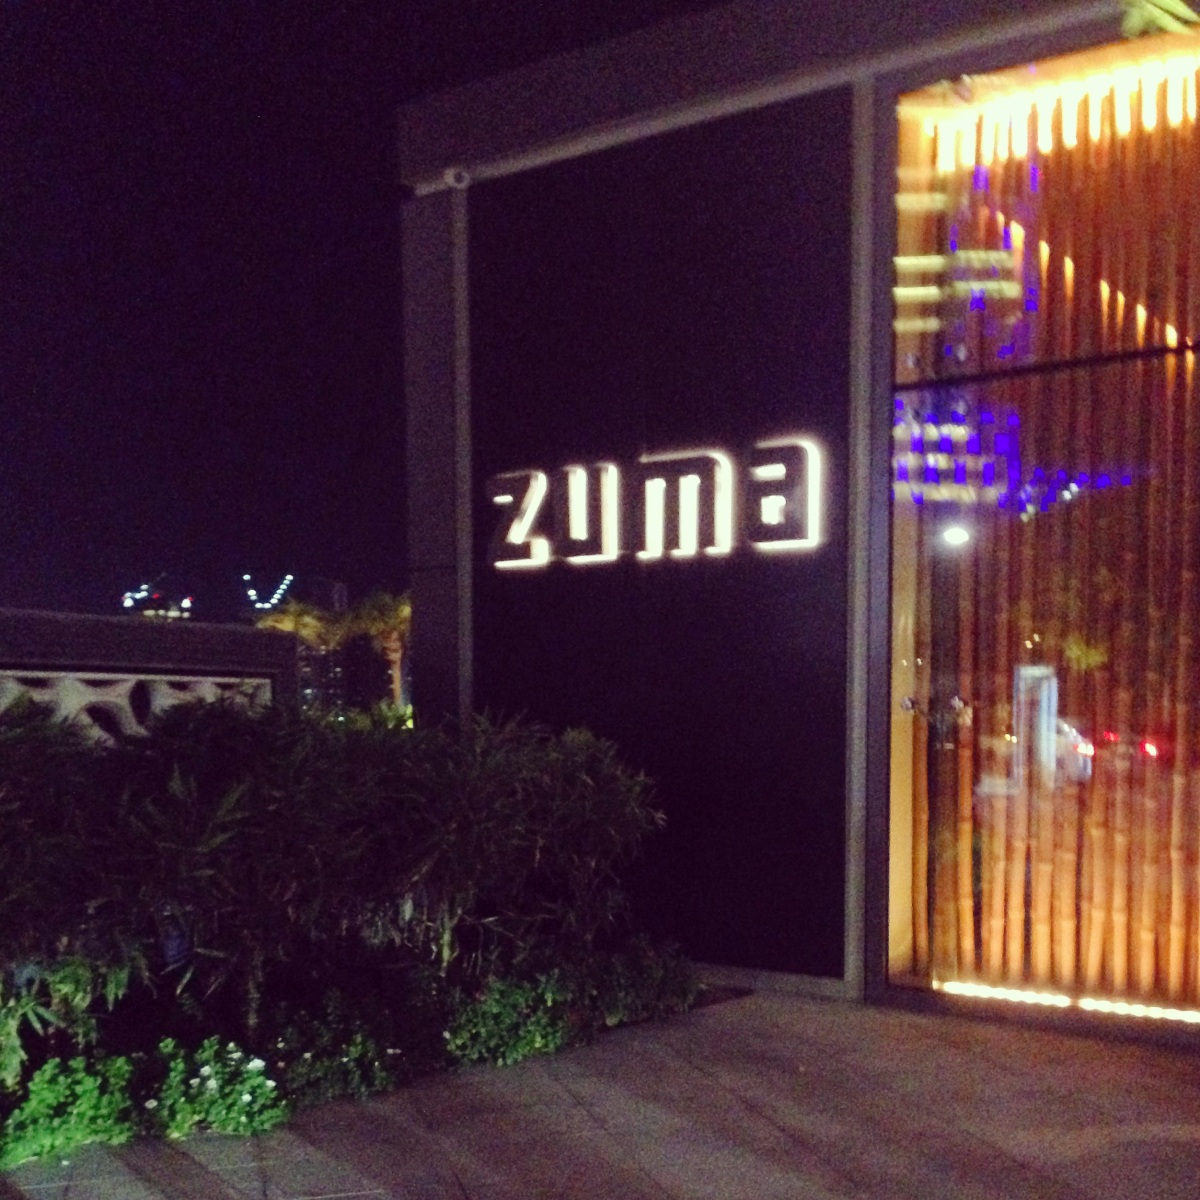 Drinks at Zuma, Abu Dhabi